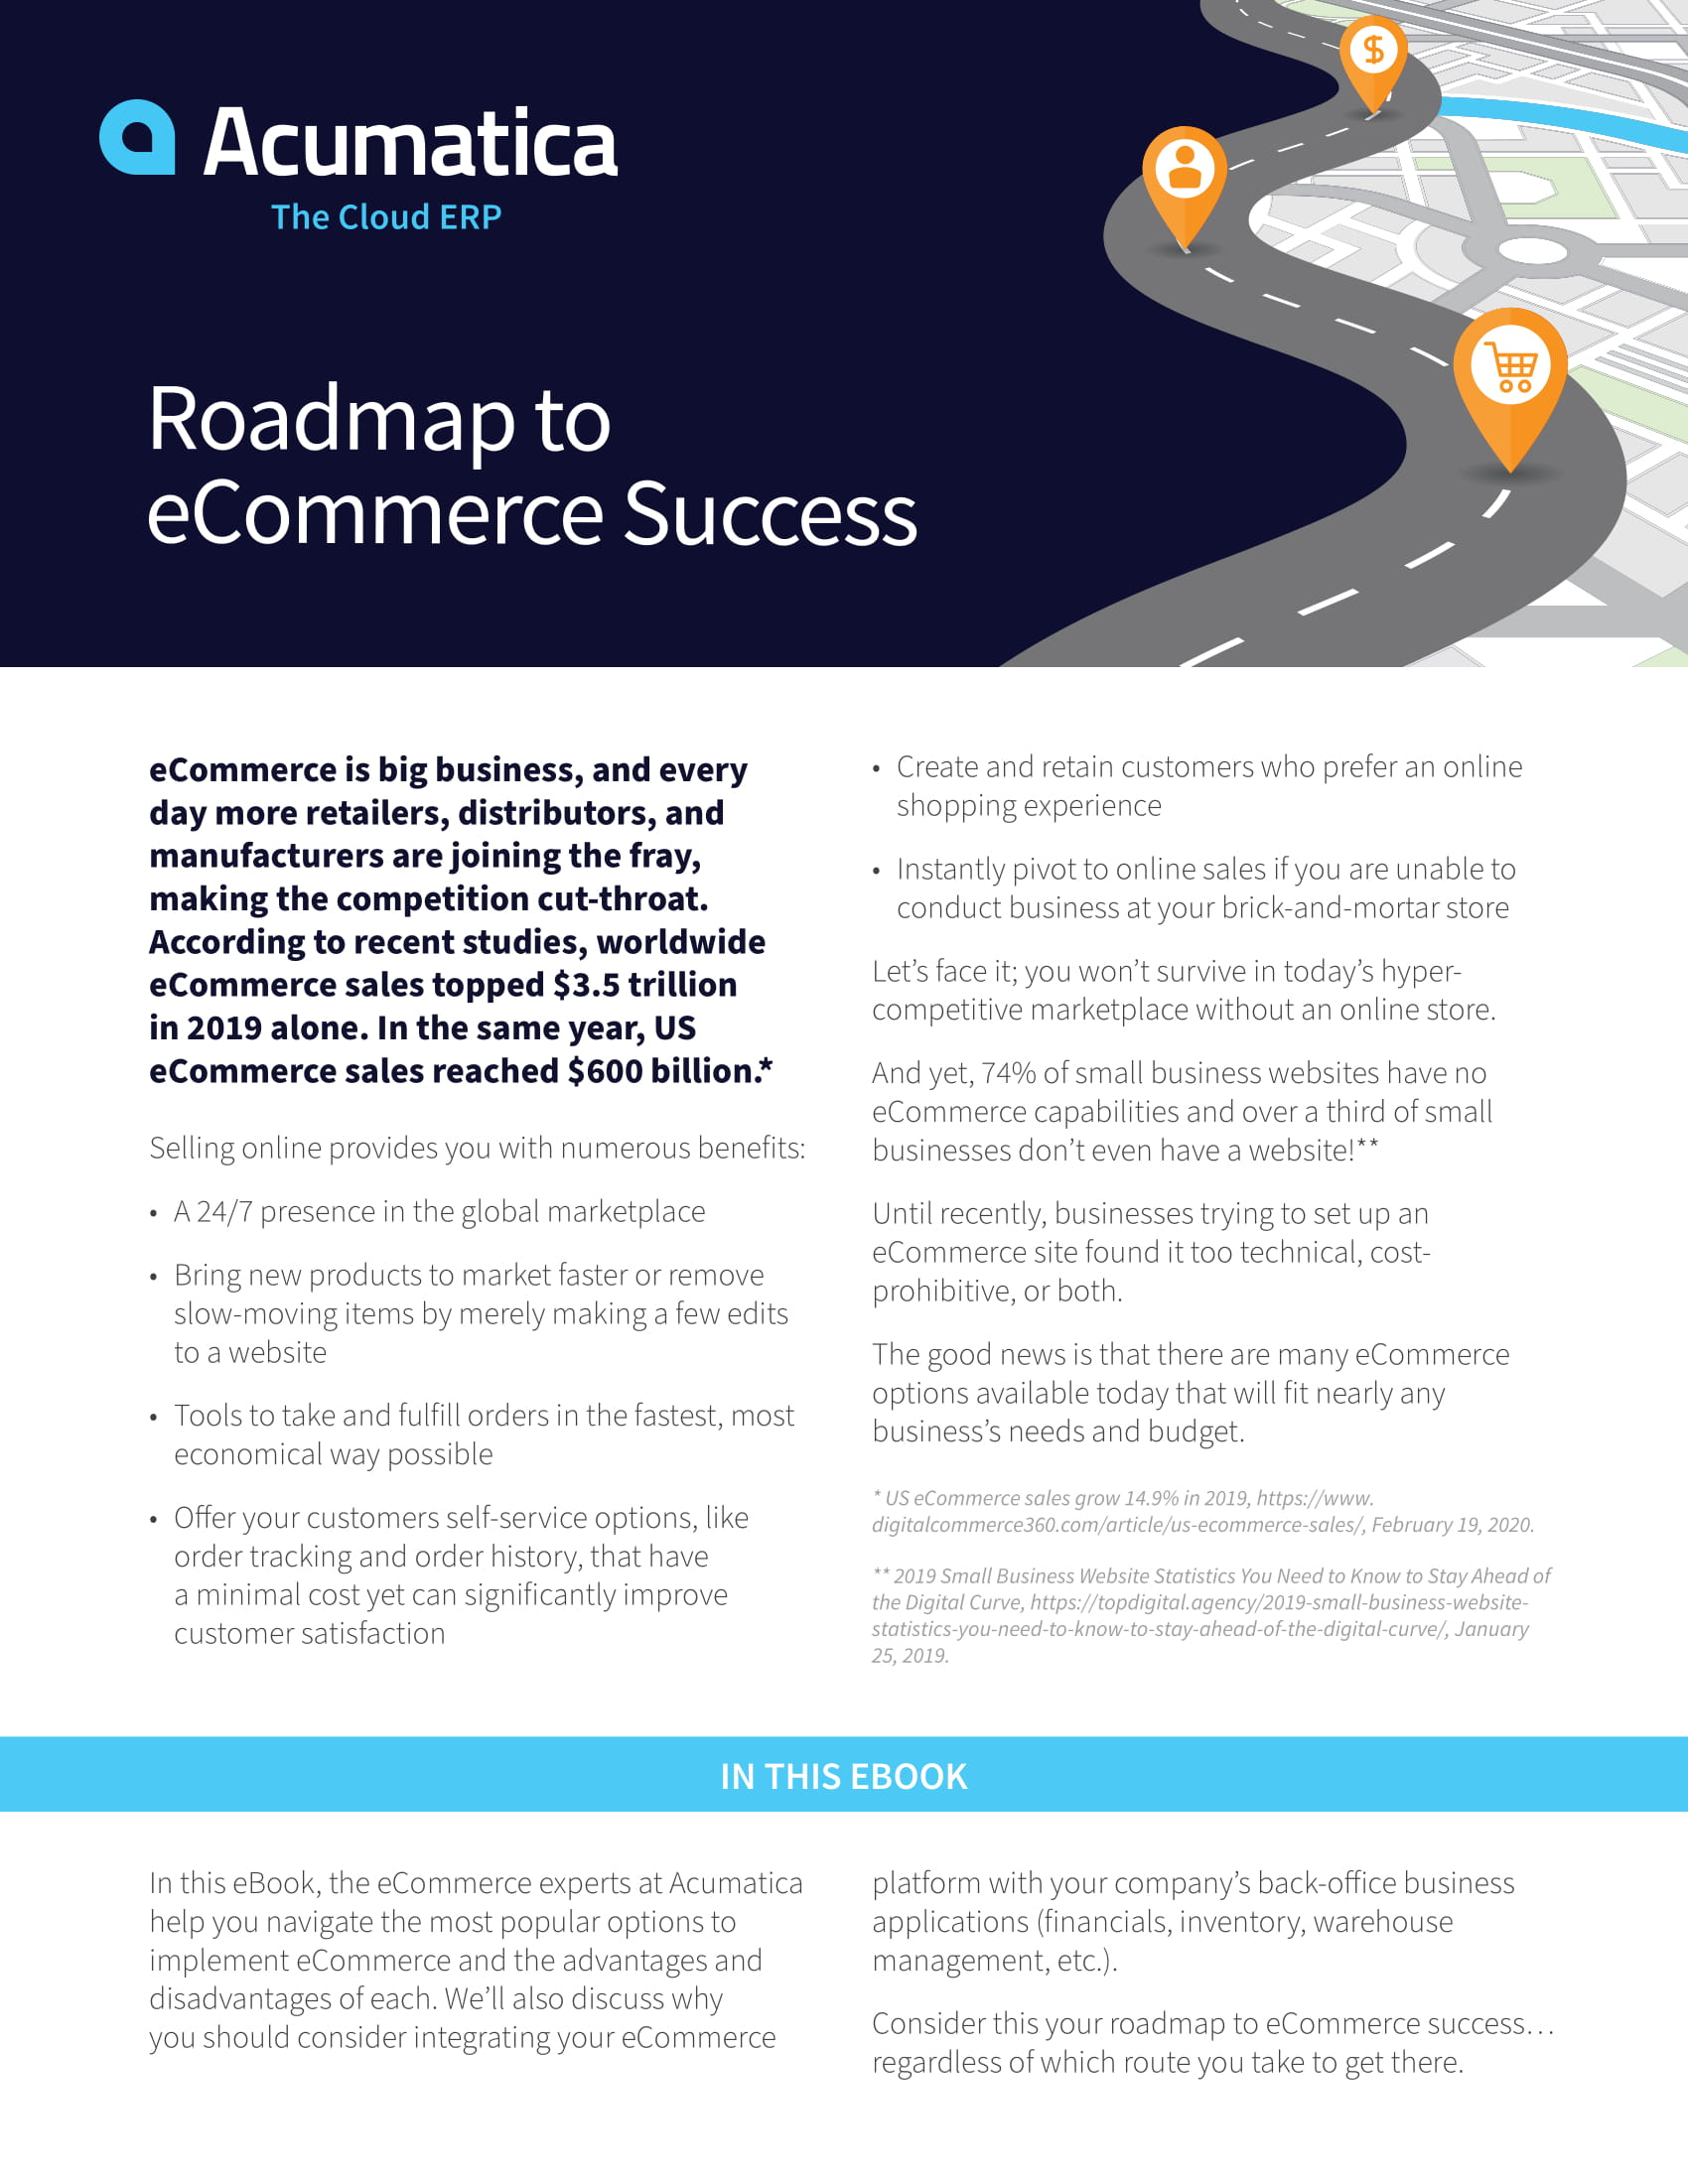 Roadmap to eCommerce Success: How to Thrive Online, page 0